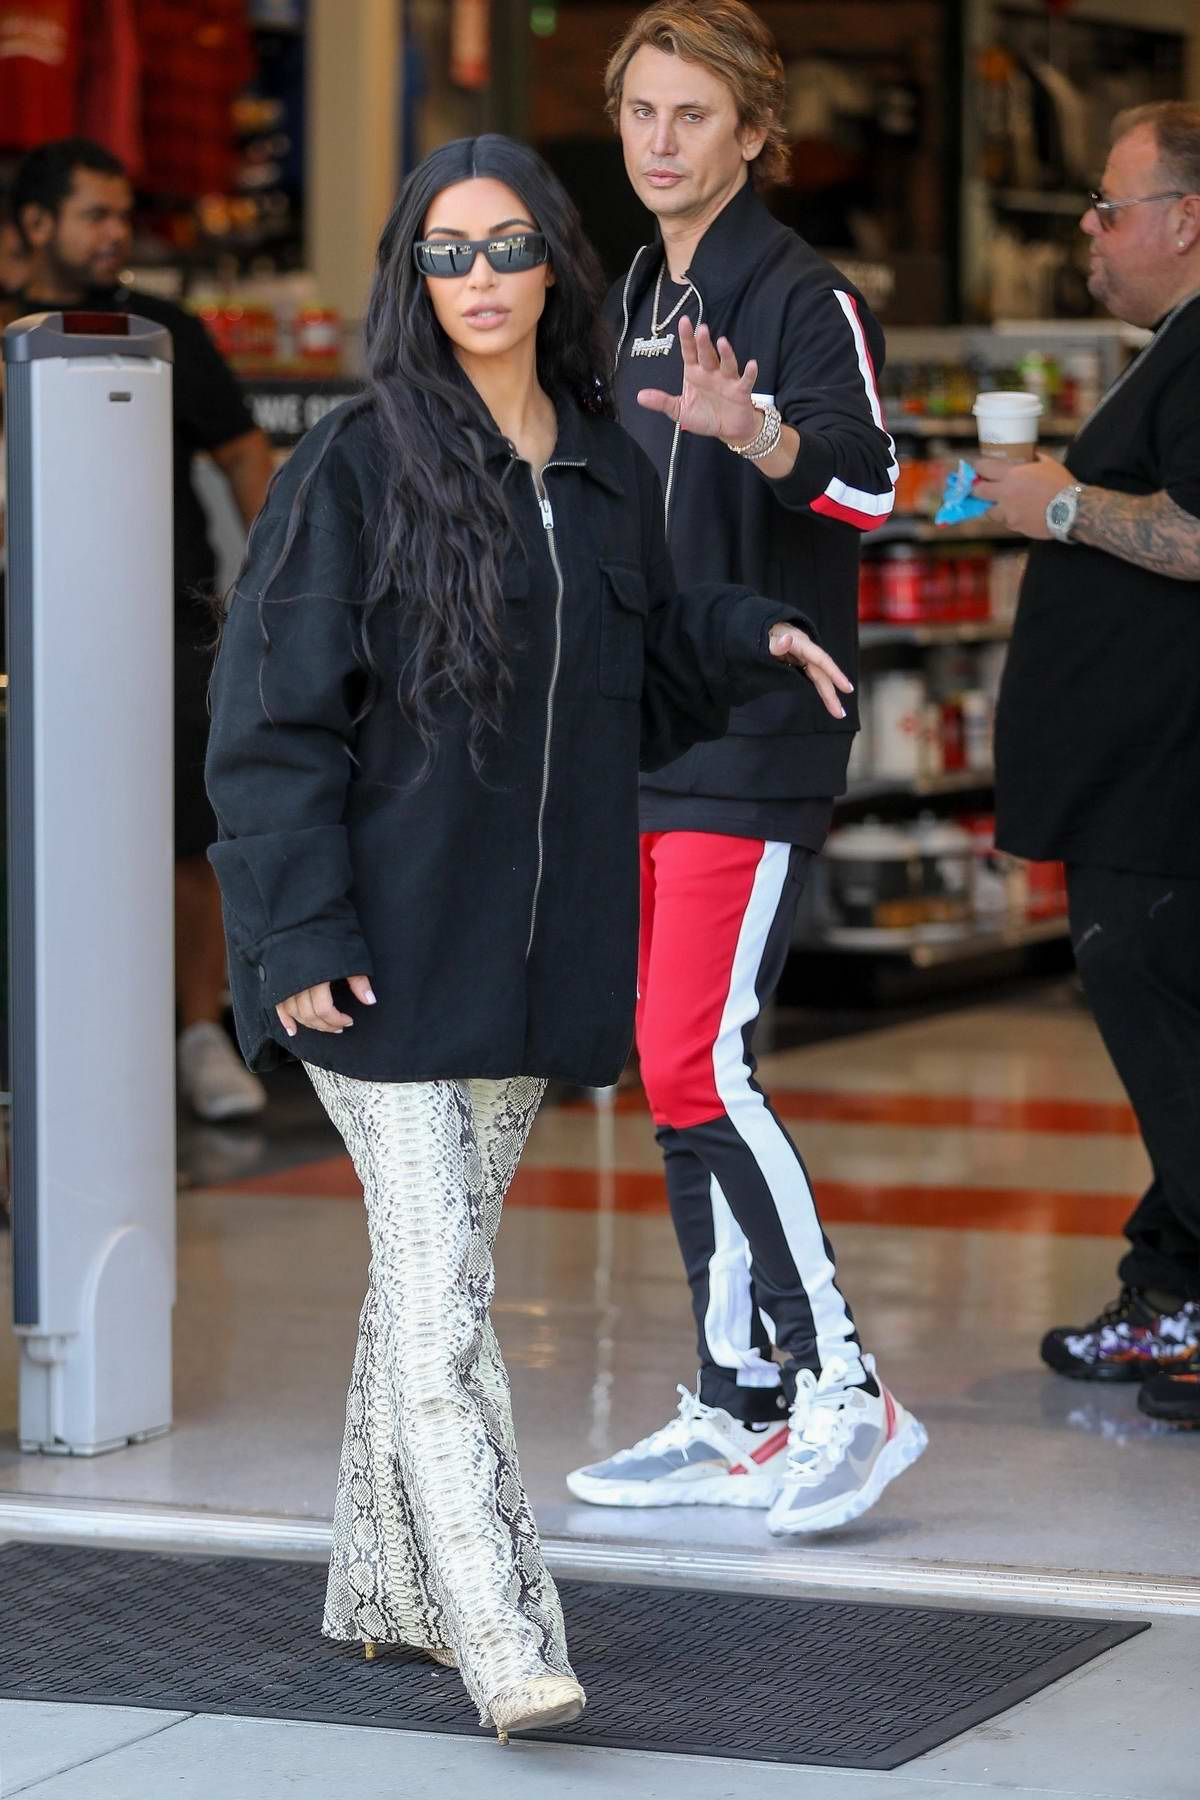 Kim Kardashian films a scene for Keeping Up With The Kardashians at Dick's Sporting Goods in Thousand Oaks, California